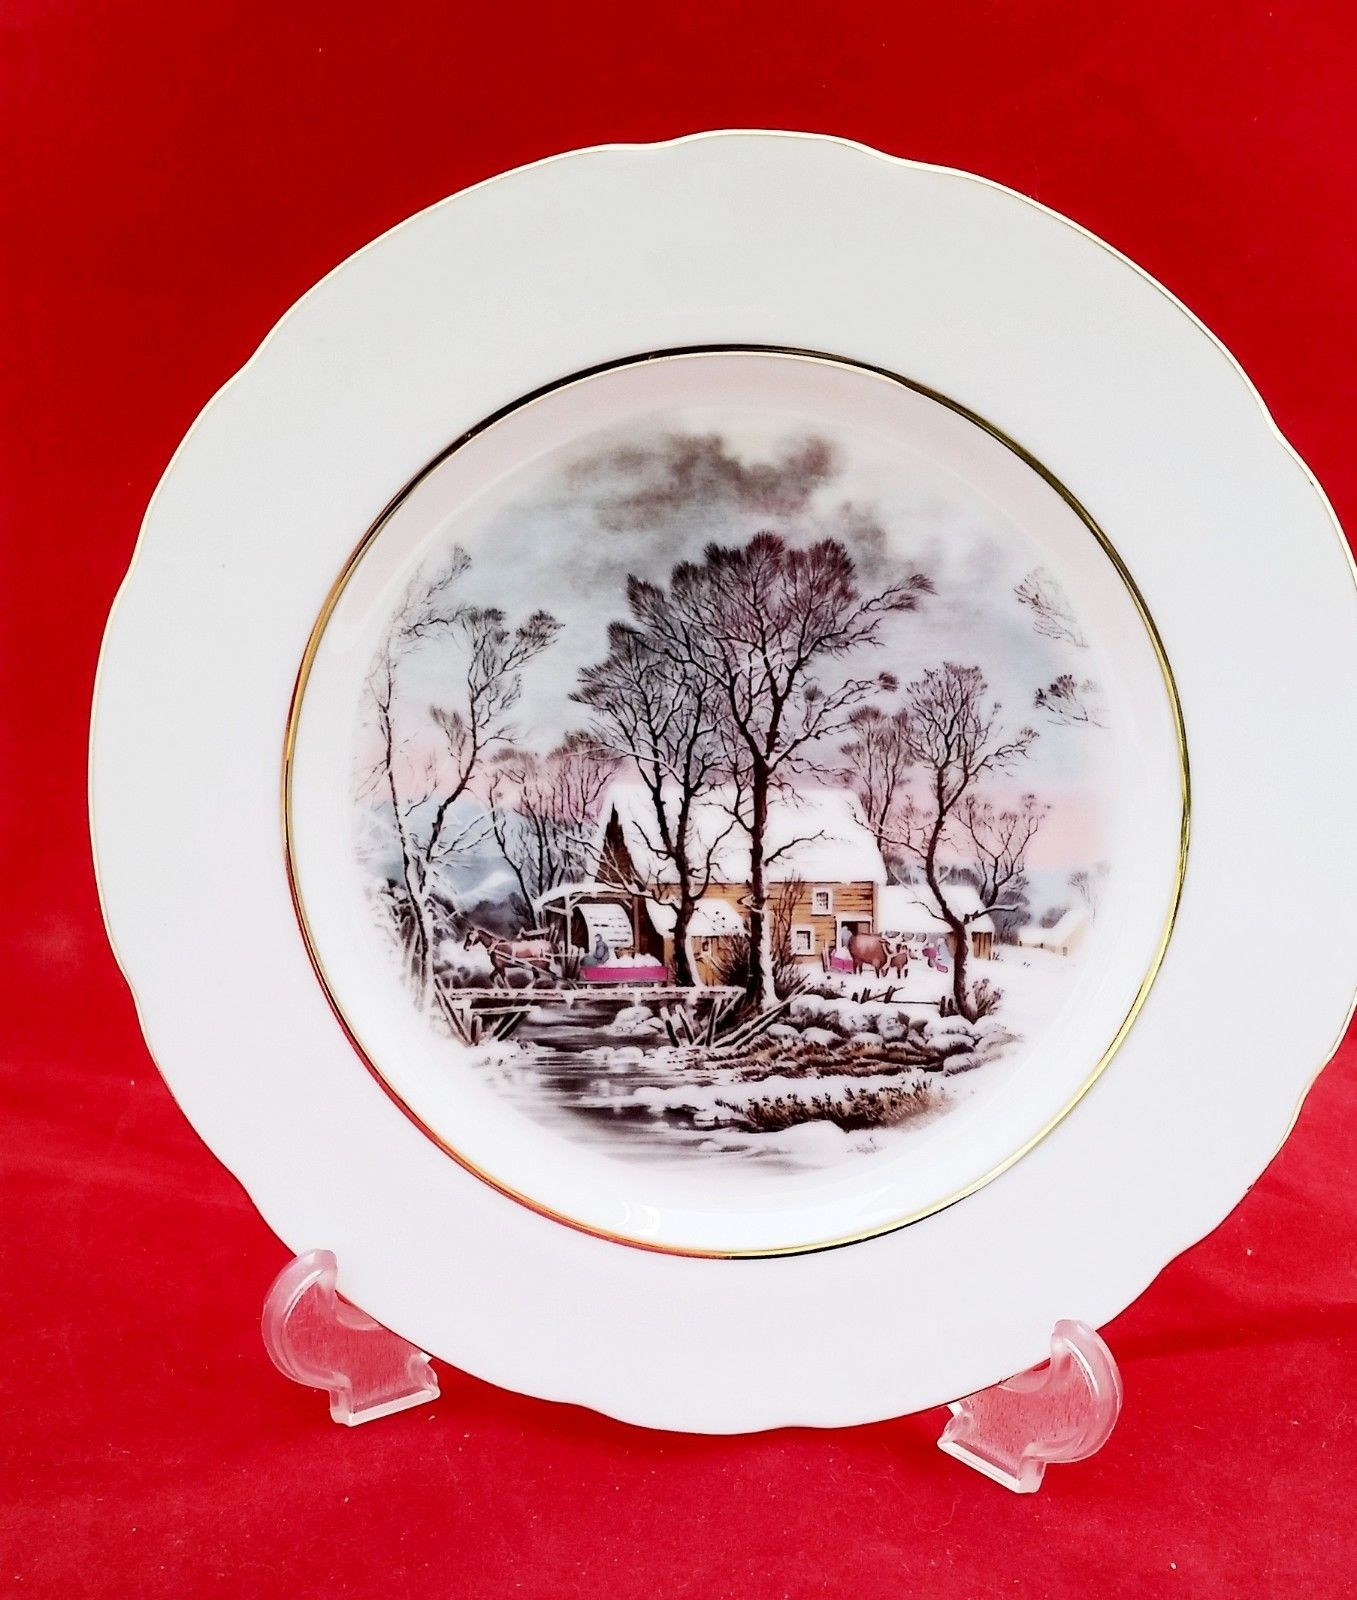 "OLD GRIST MILL 8"" DECORATIVE PLATE GOLD COLOR RIM MINT CONDITION AVON AWARD"